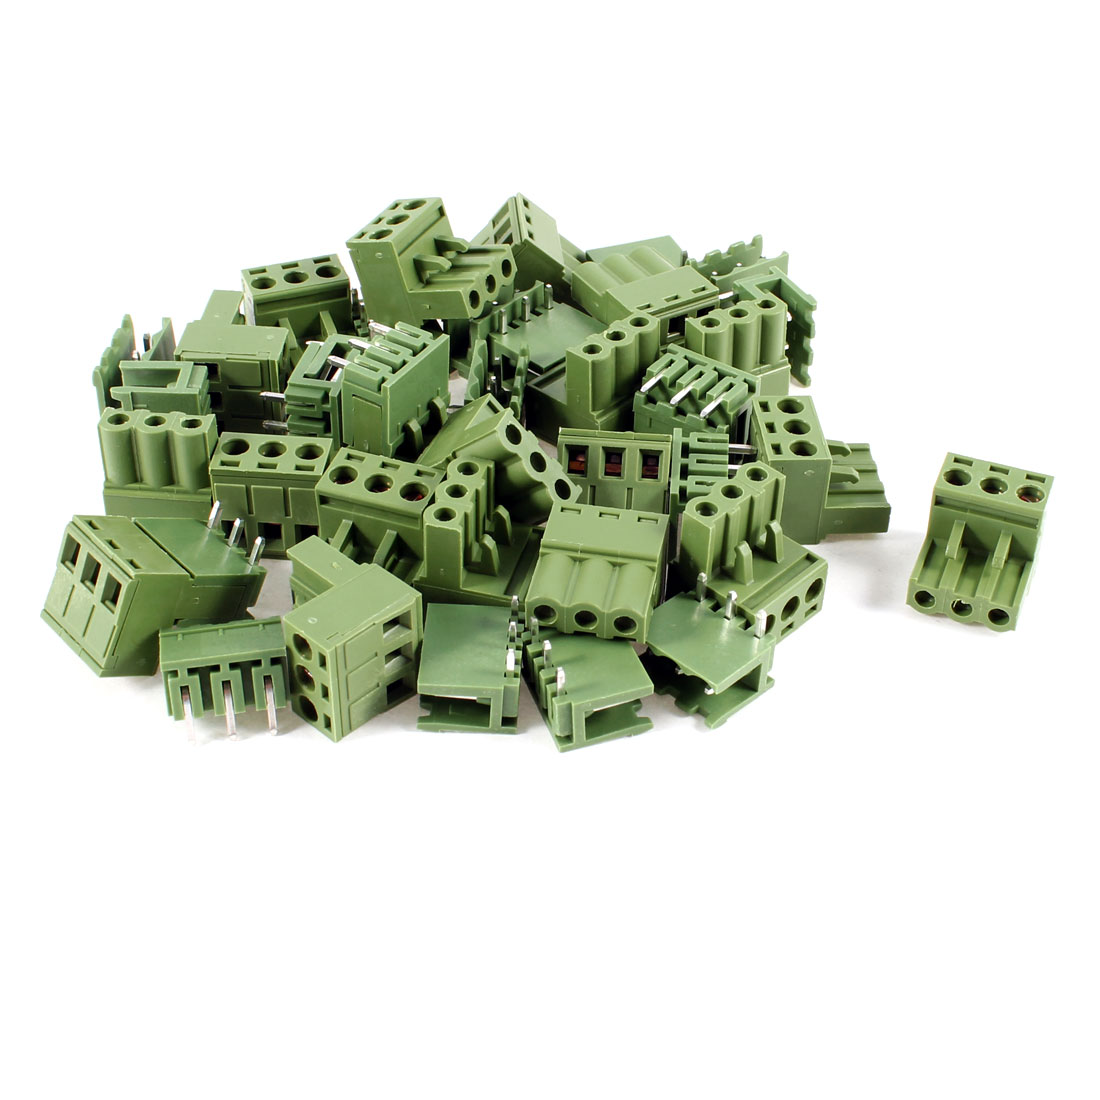 20 Pcs 300V 10A Single Row 3 Positions Pluggable Terminal Block Oliver Green